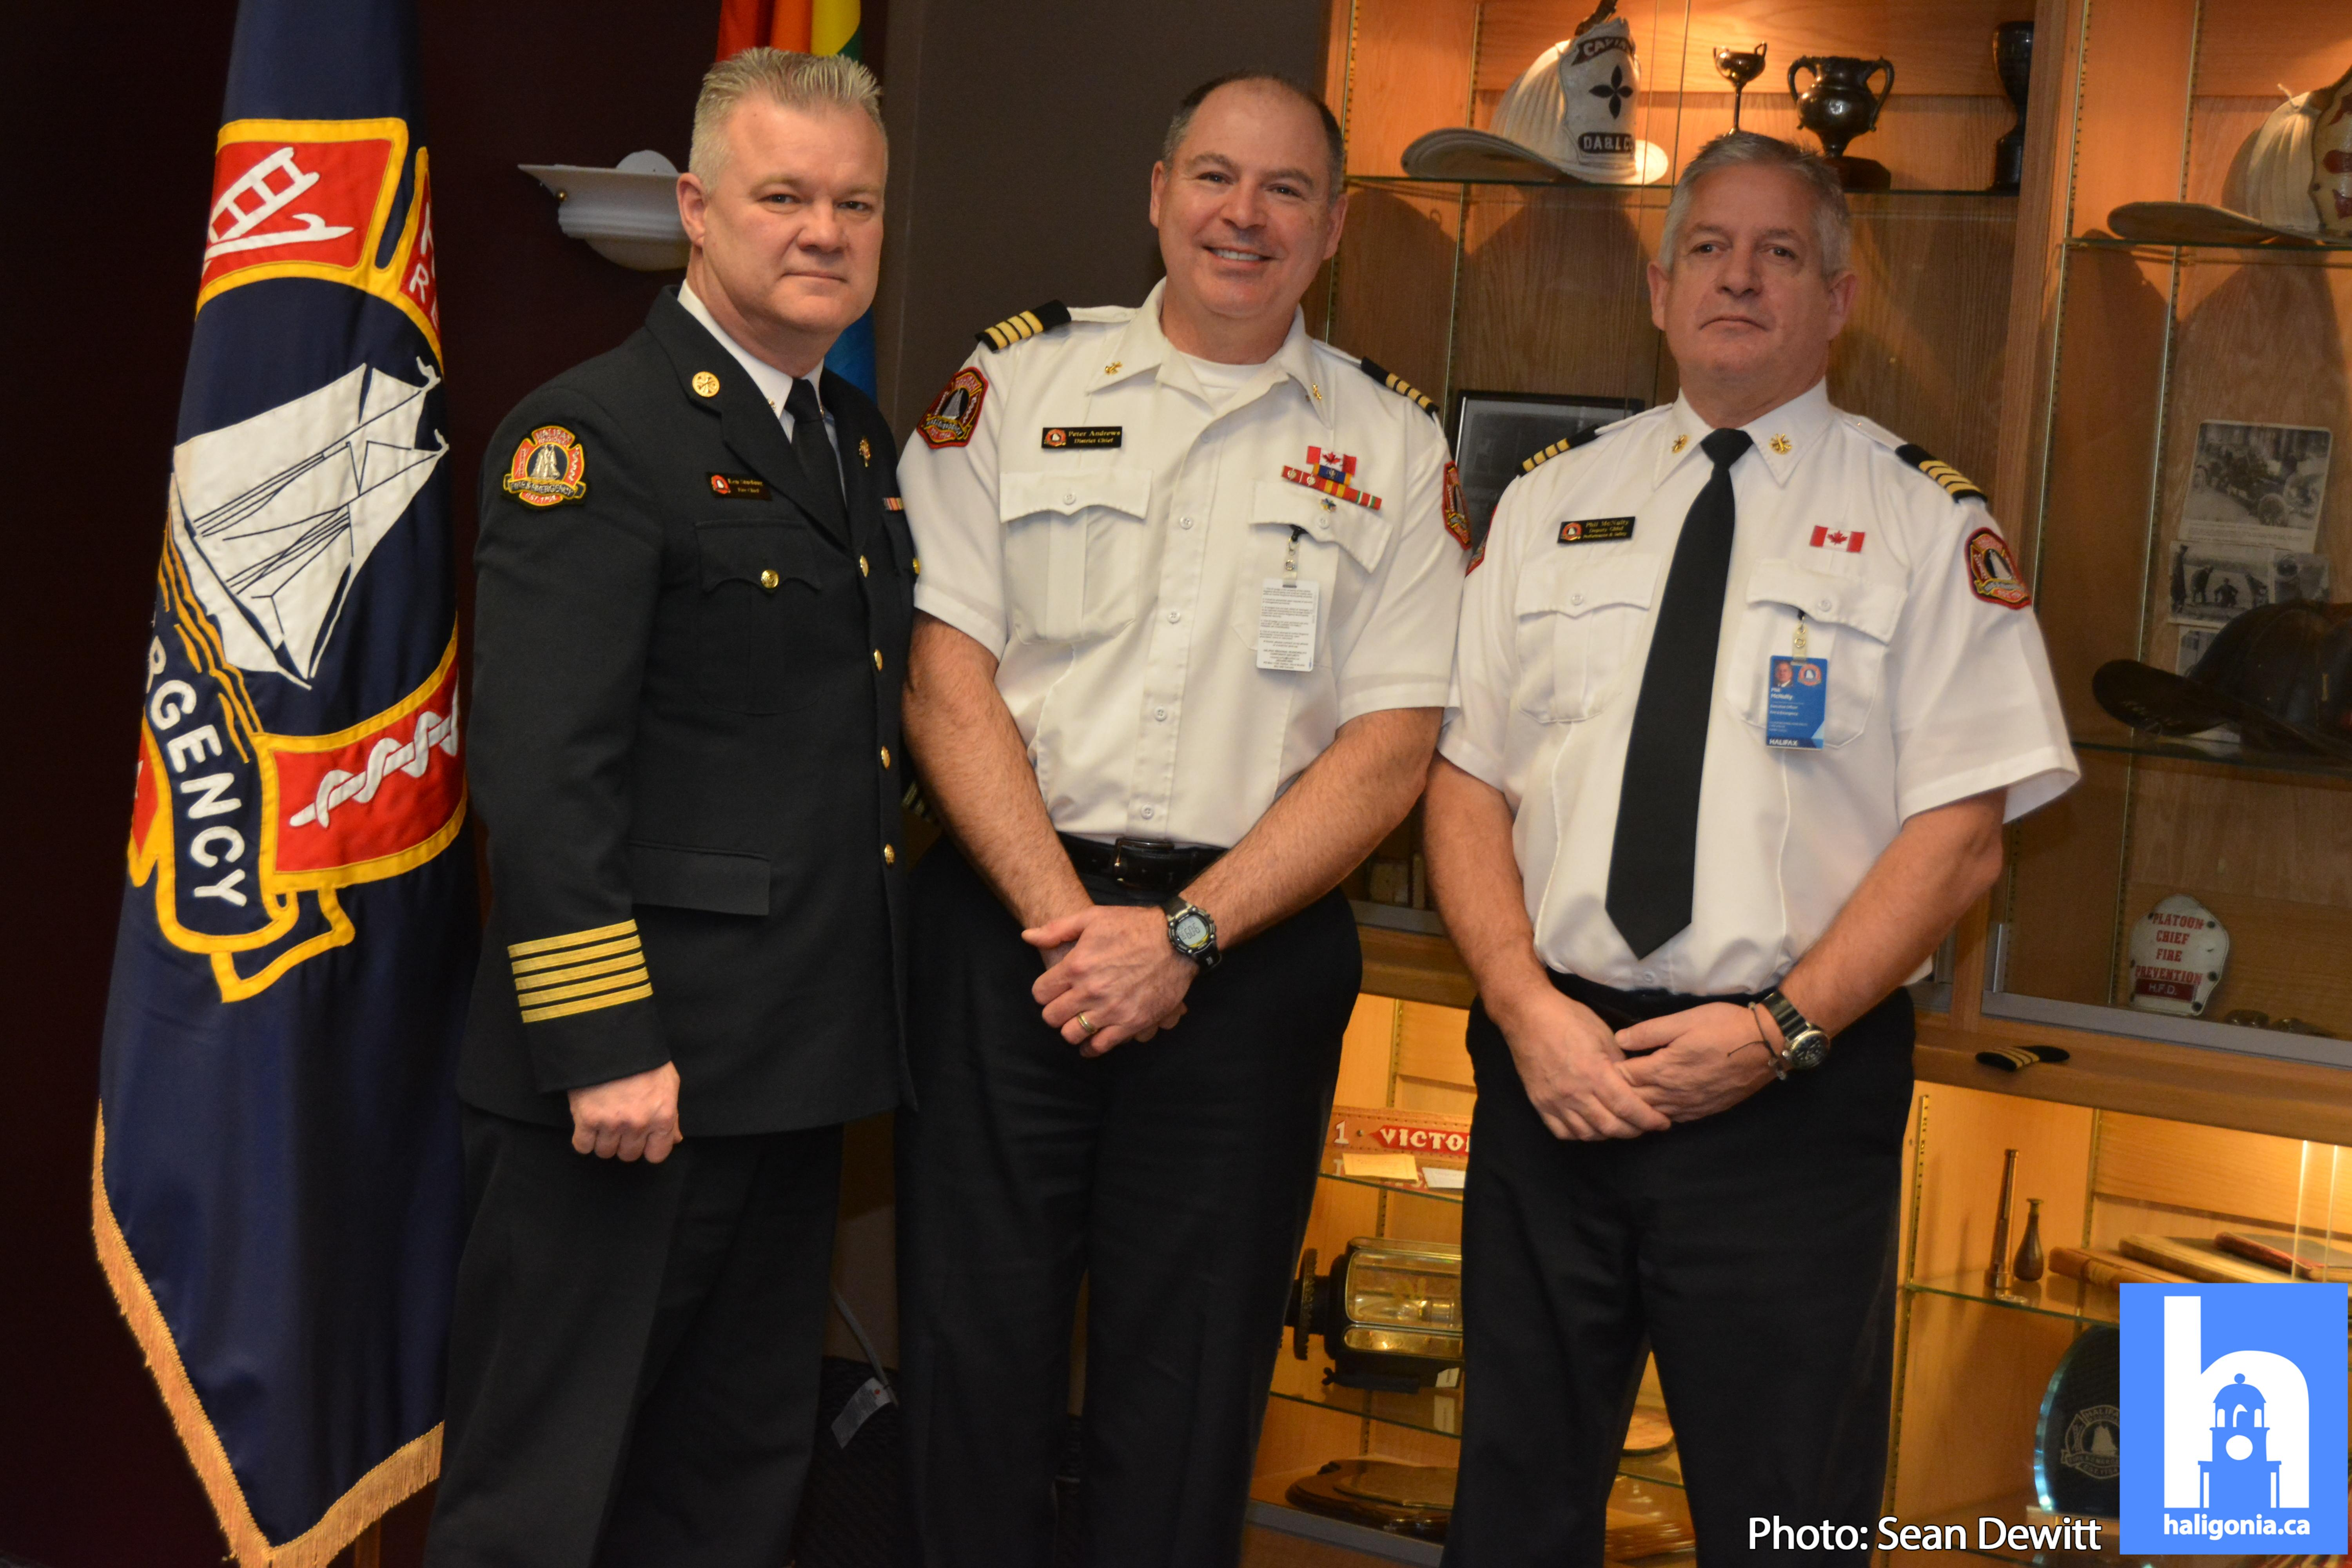 HRFE promotions stay local during ceremony in Dartmouth